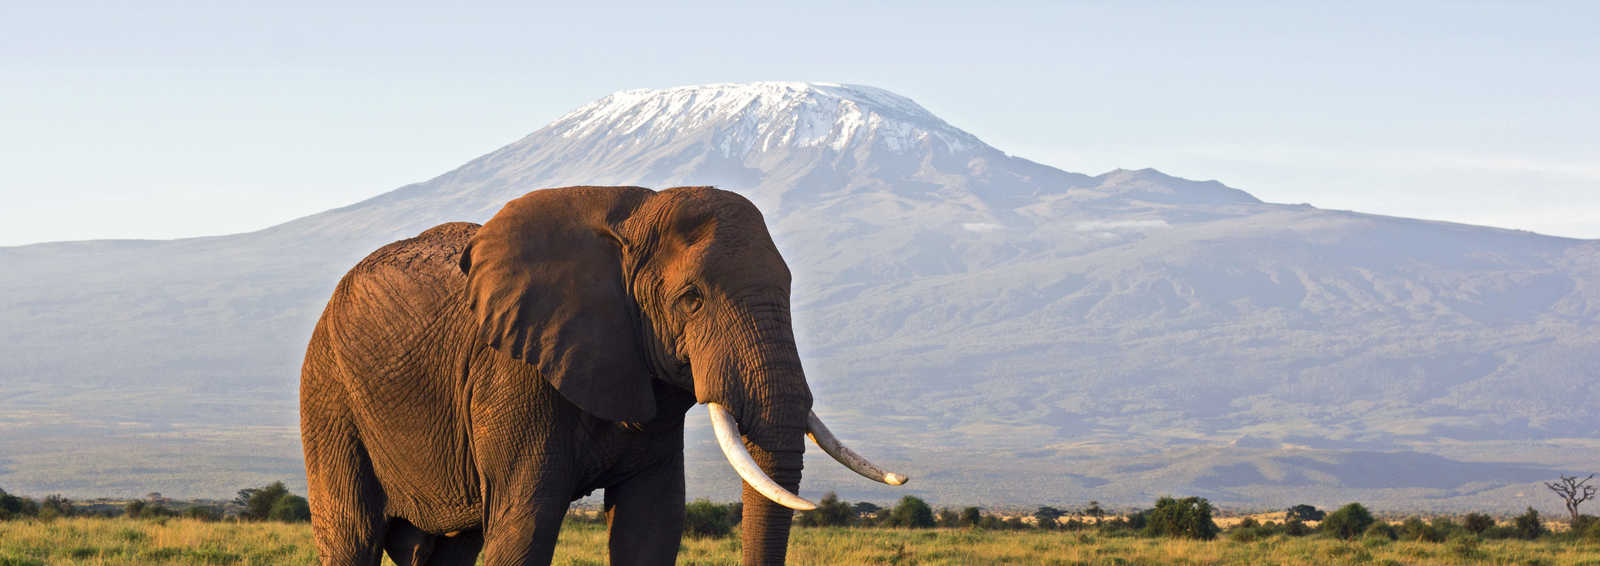 Elephant in front of Kilimanjaro, Tanzania